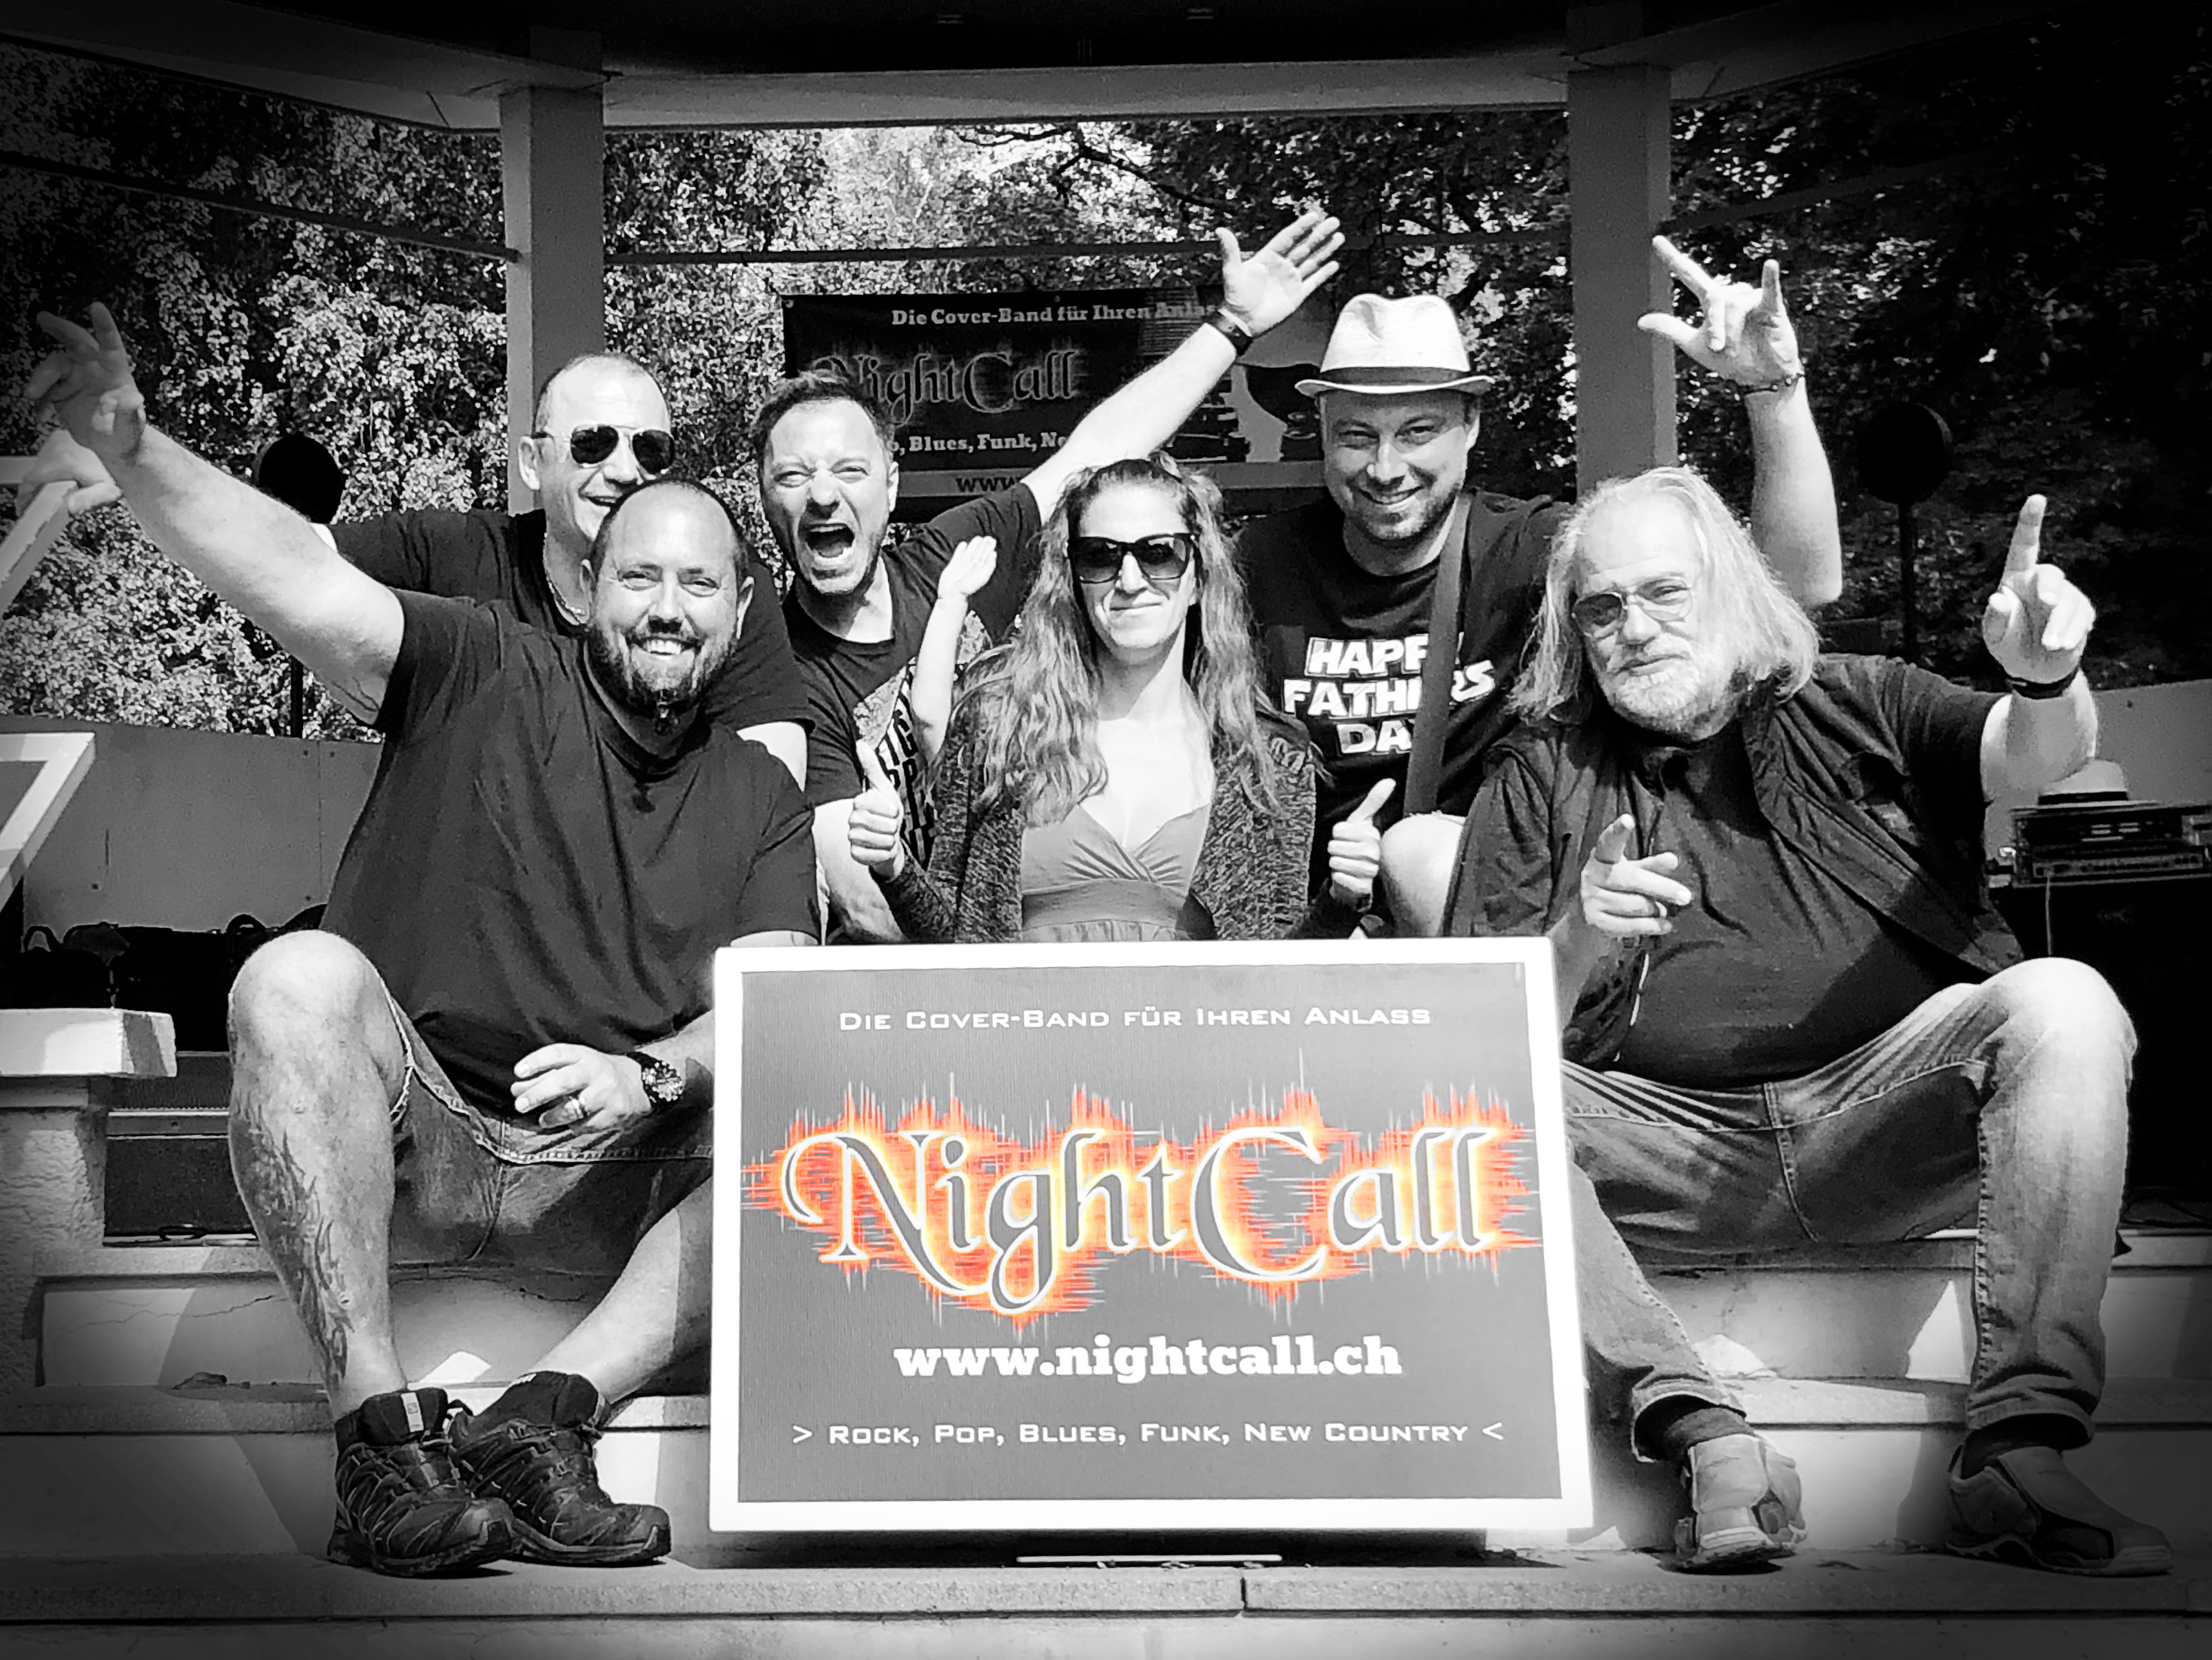 NightCall Band